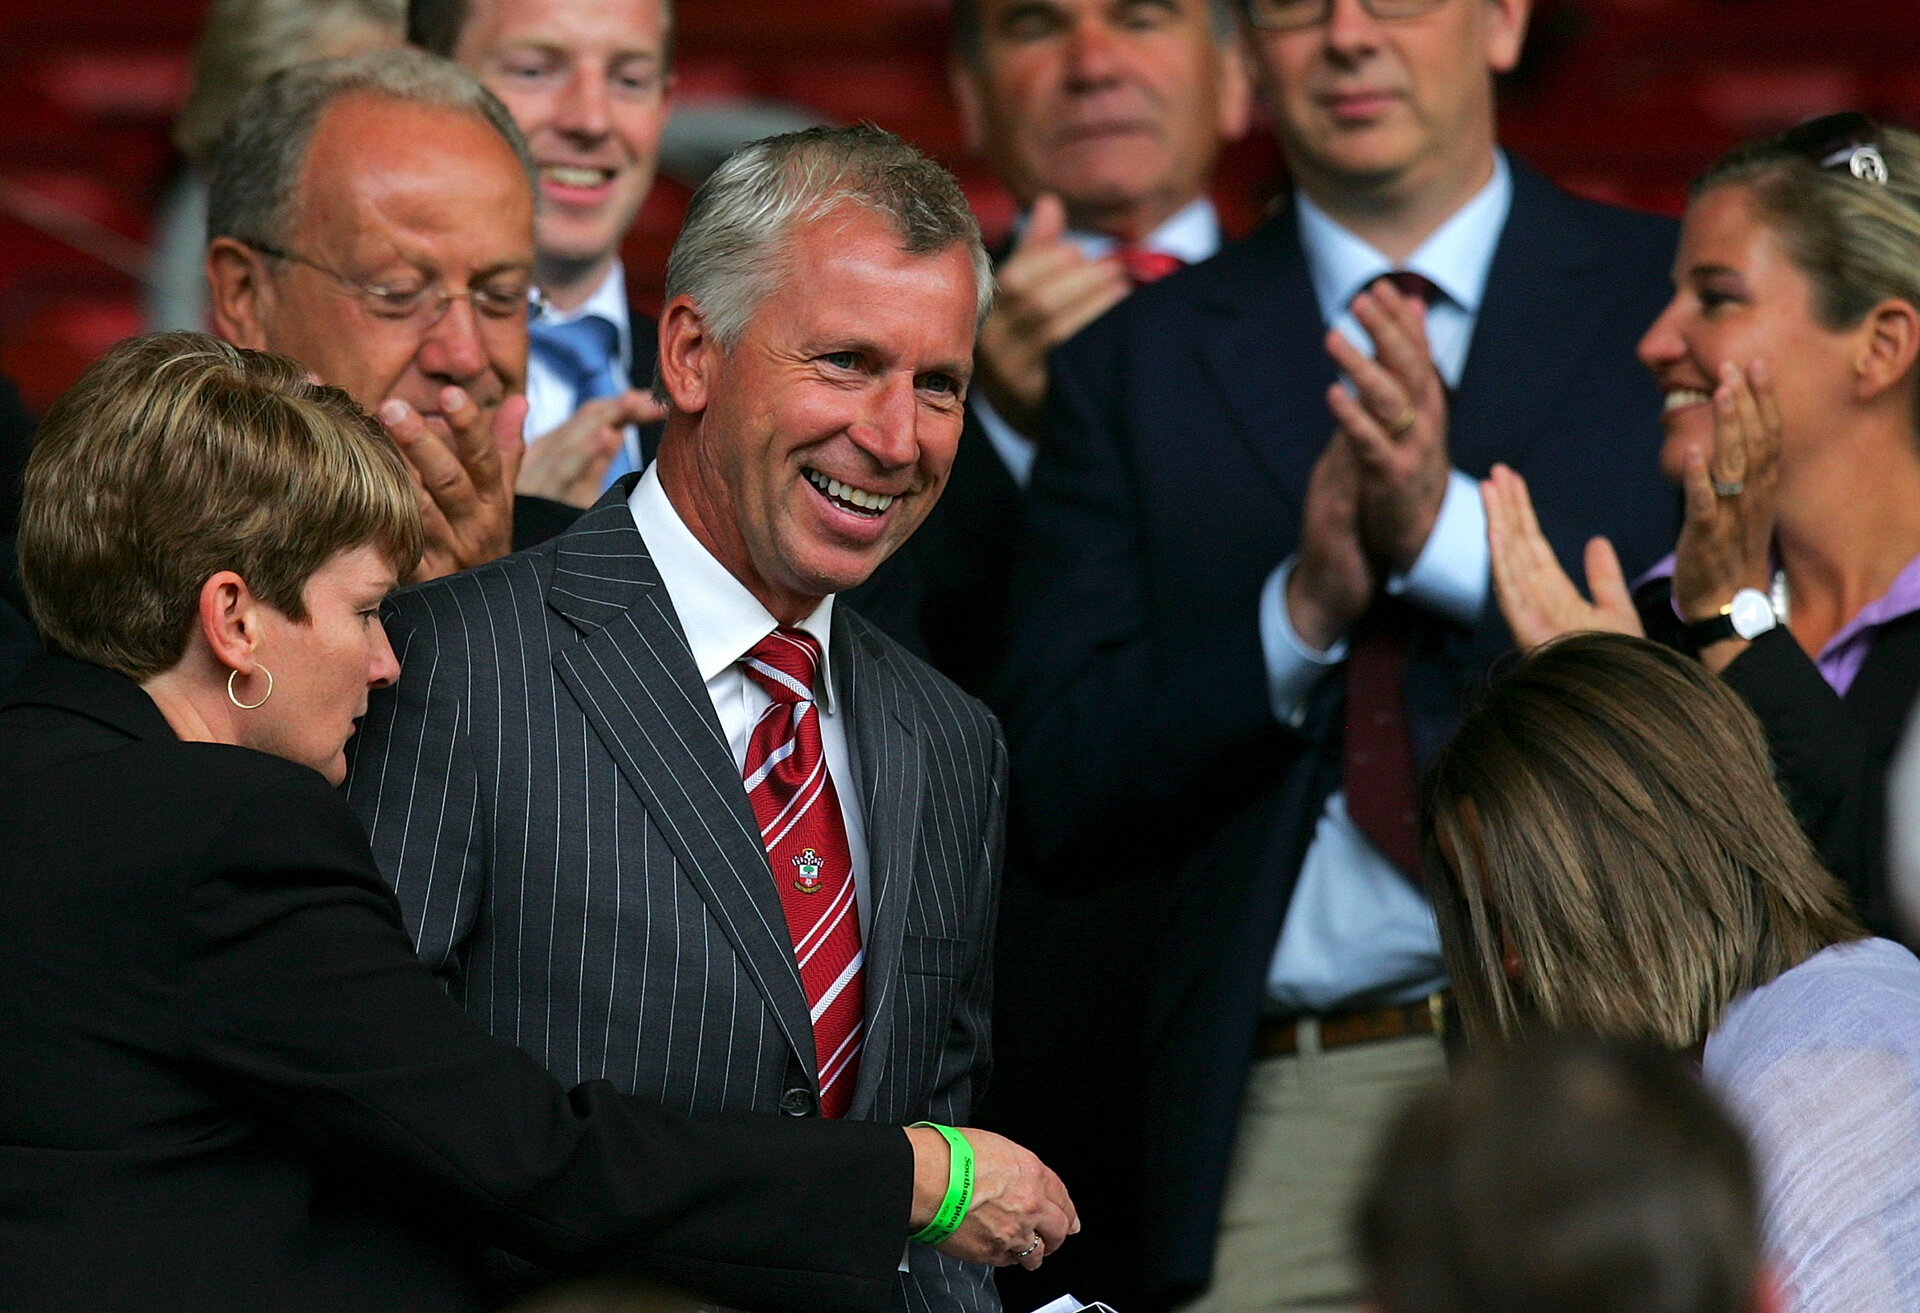 SOUTHAMPTON, UNITED KINGDOM - JULY 18: New manager of Southampton Alan Pardew smiles prior to the Pre Season Friendly match between Southampton and Ajax at St Mary's Stadium on July 18, 2009 in Southampton, England. (Photo by Tom Dulat/Getty Images)